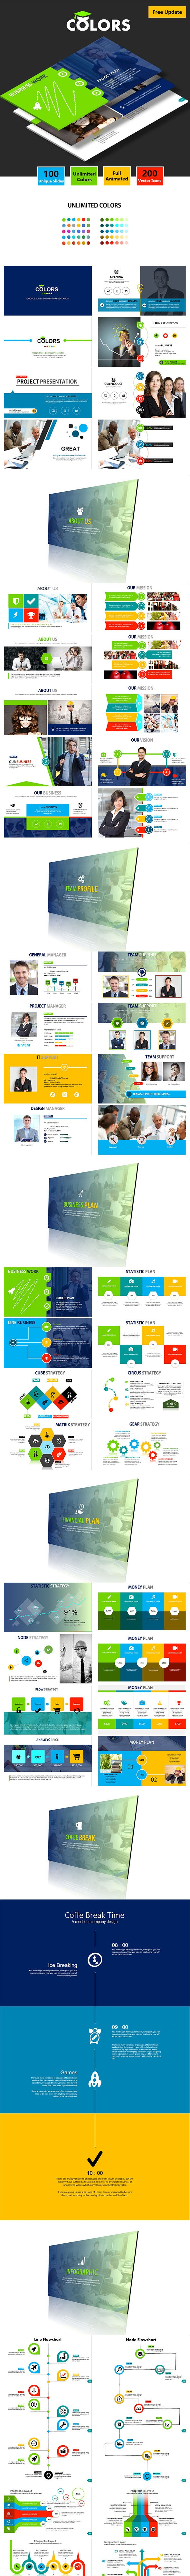 COLORS -  Google Slides Business Presentation - Google Slides Presentation Templates